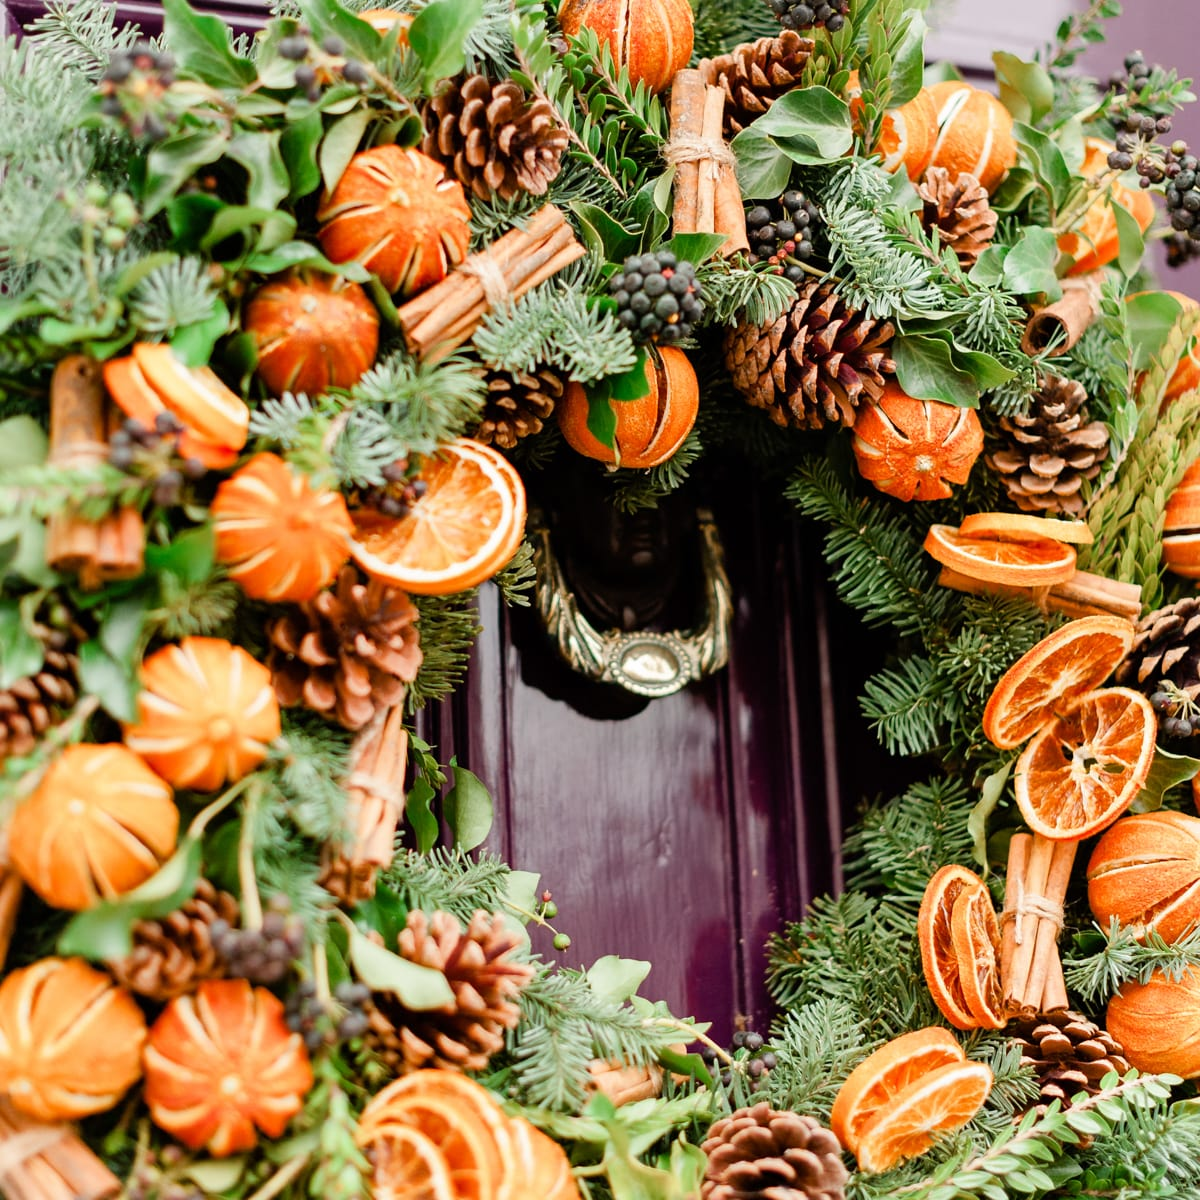 Bloom Flower Delivery | Festive Clementine Wreath